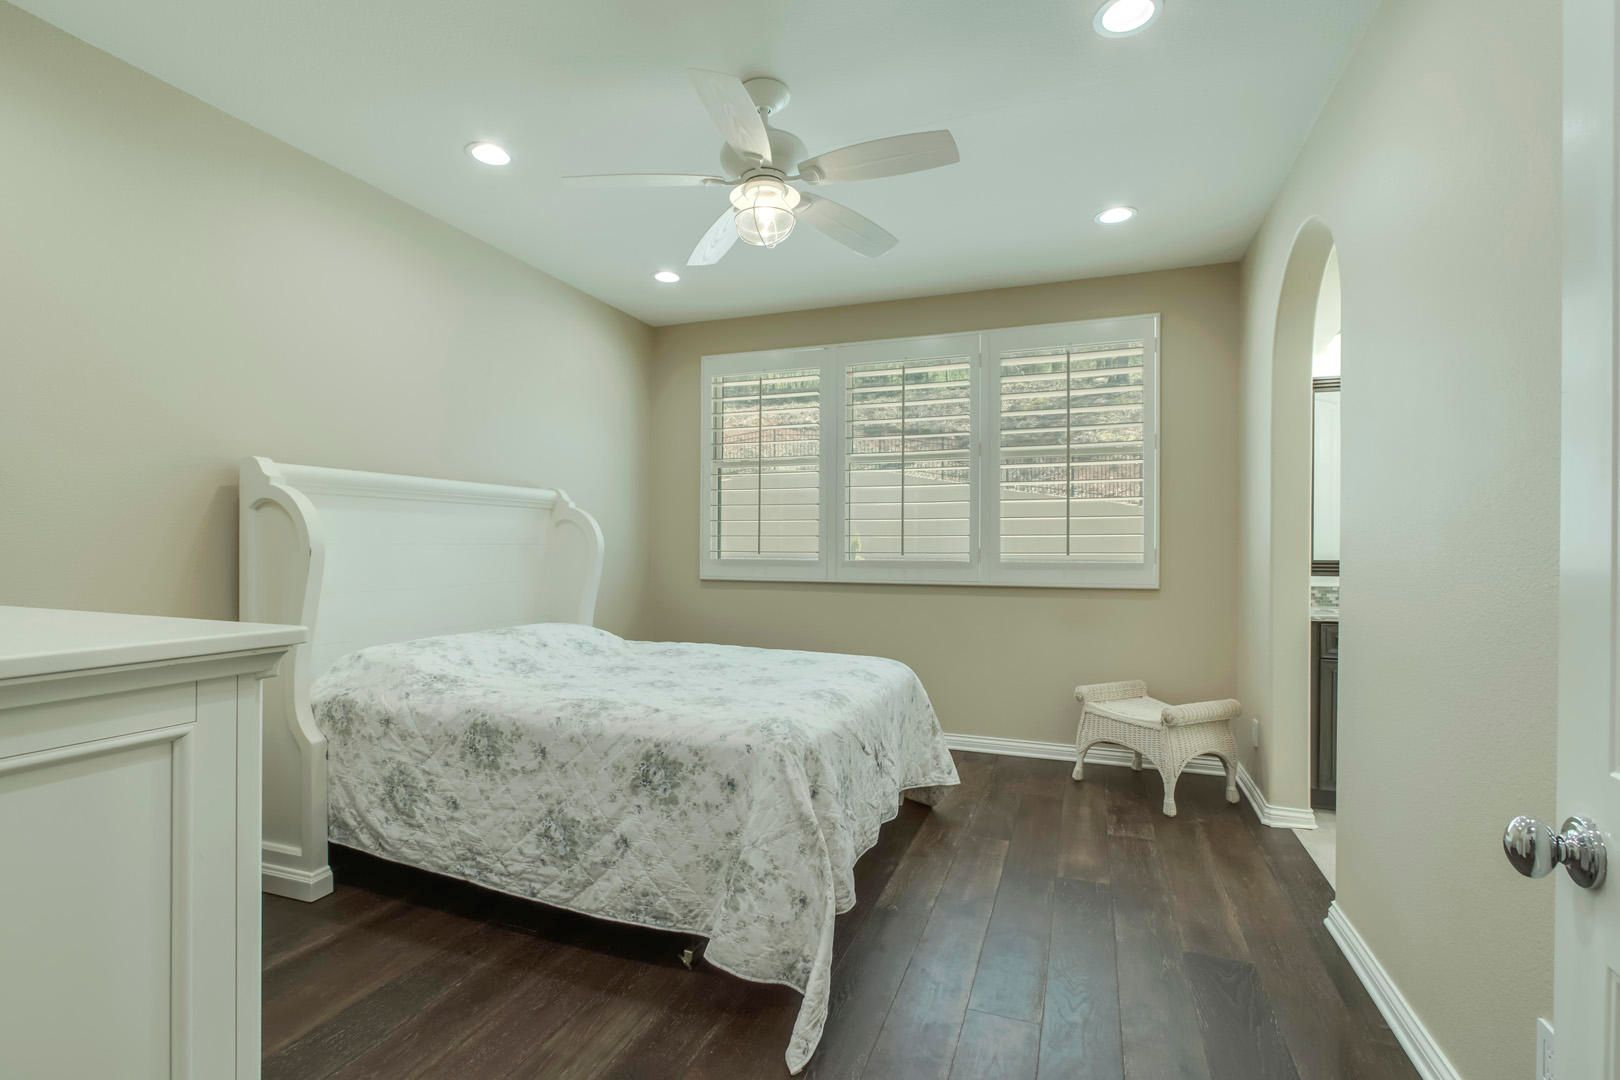 27_CabotRidgeLane_12815_Bedroom3_01